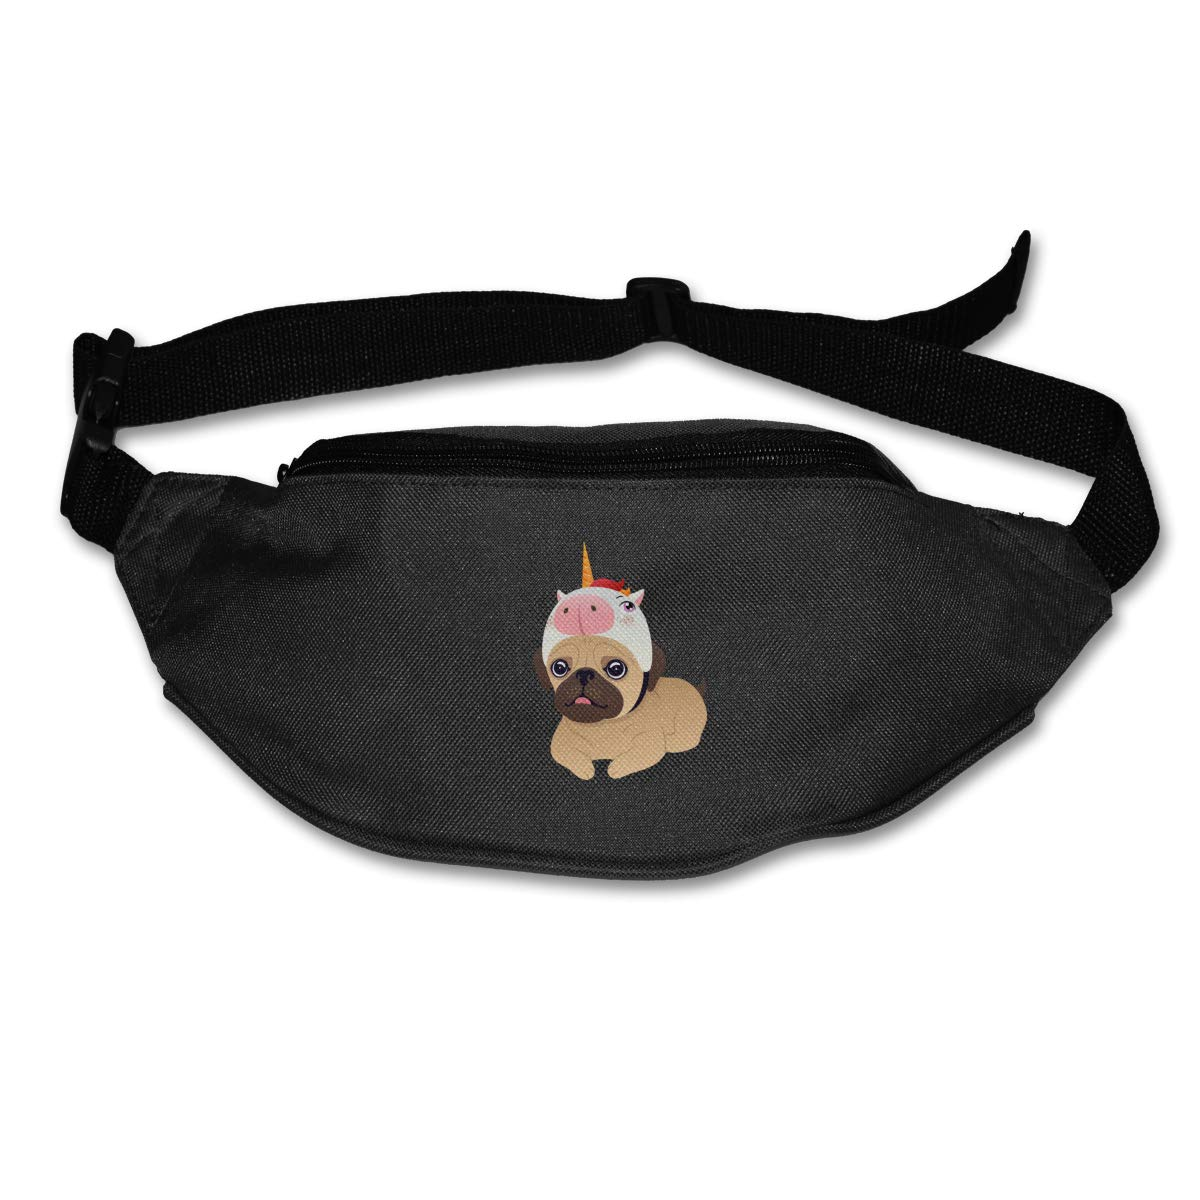 Funny Unicorn Dog Sport Waist Packs Fanny Pack Adjustable For Hike